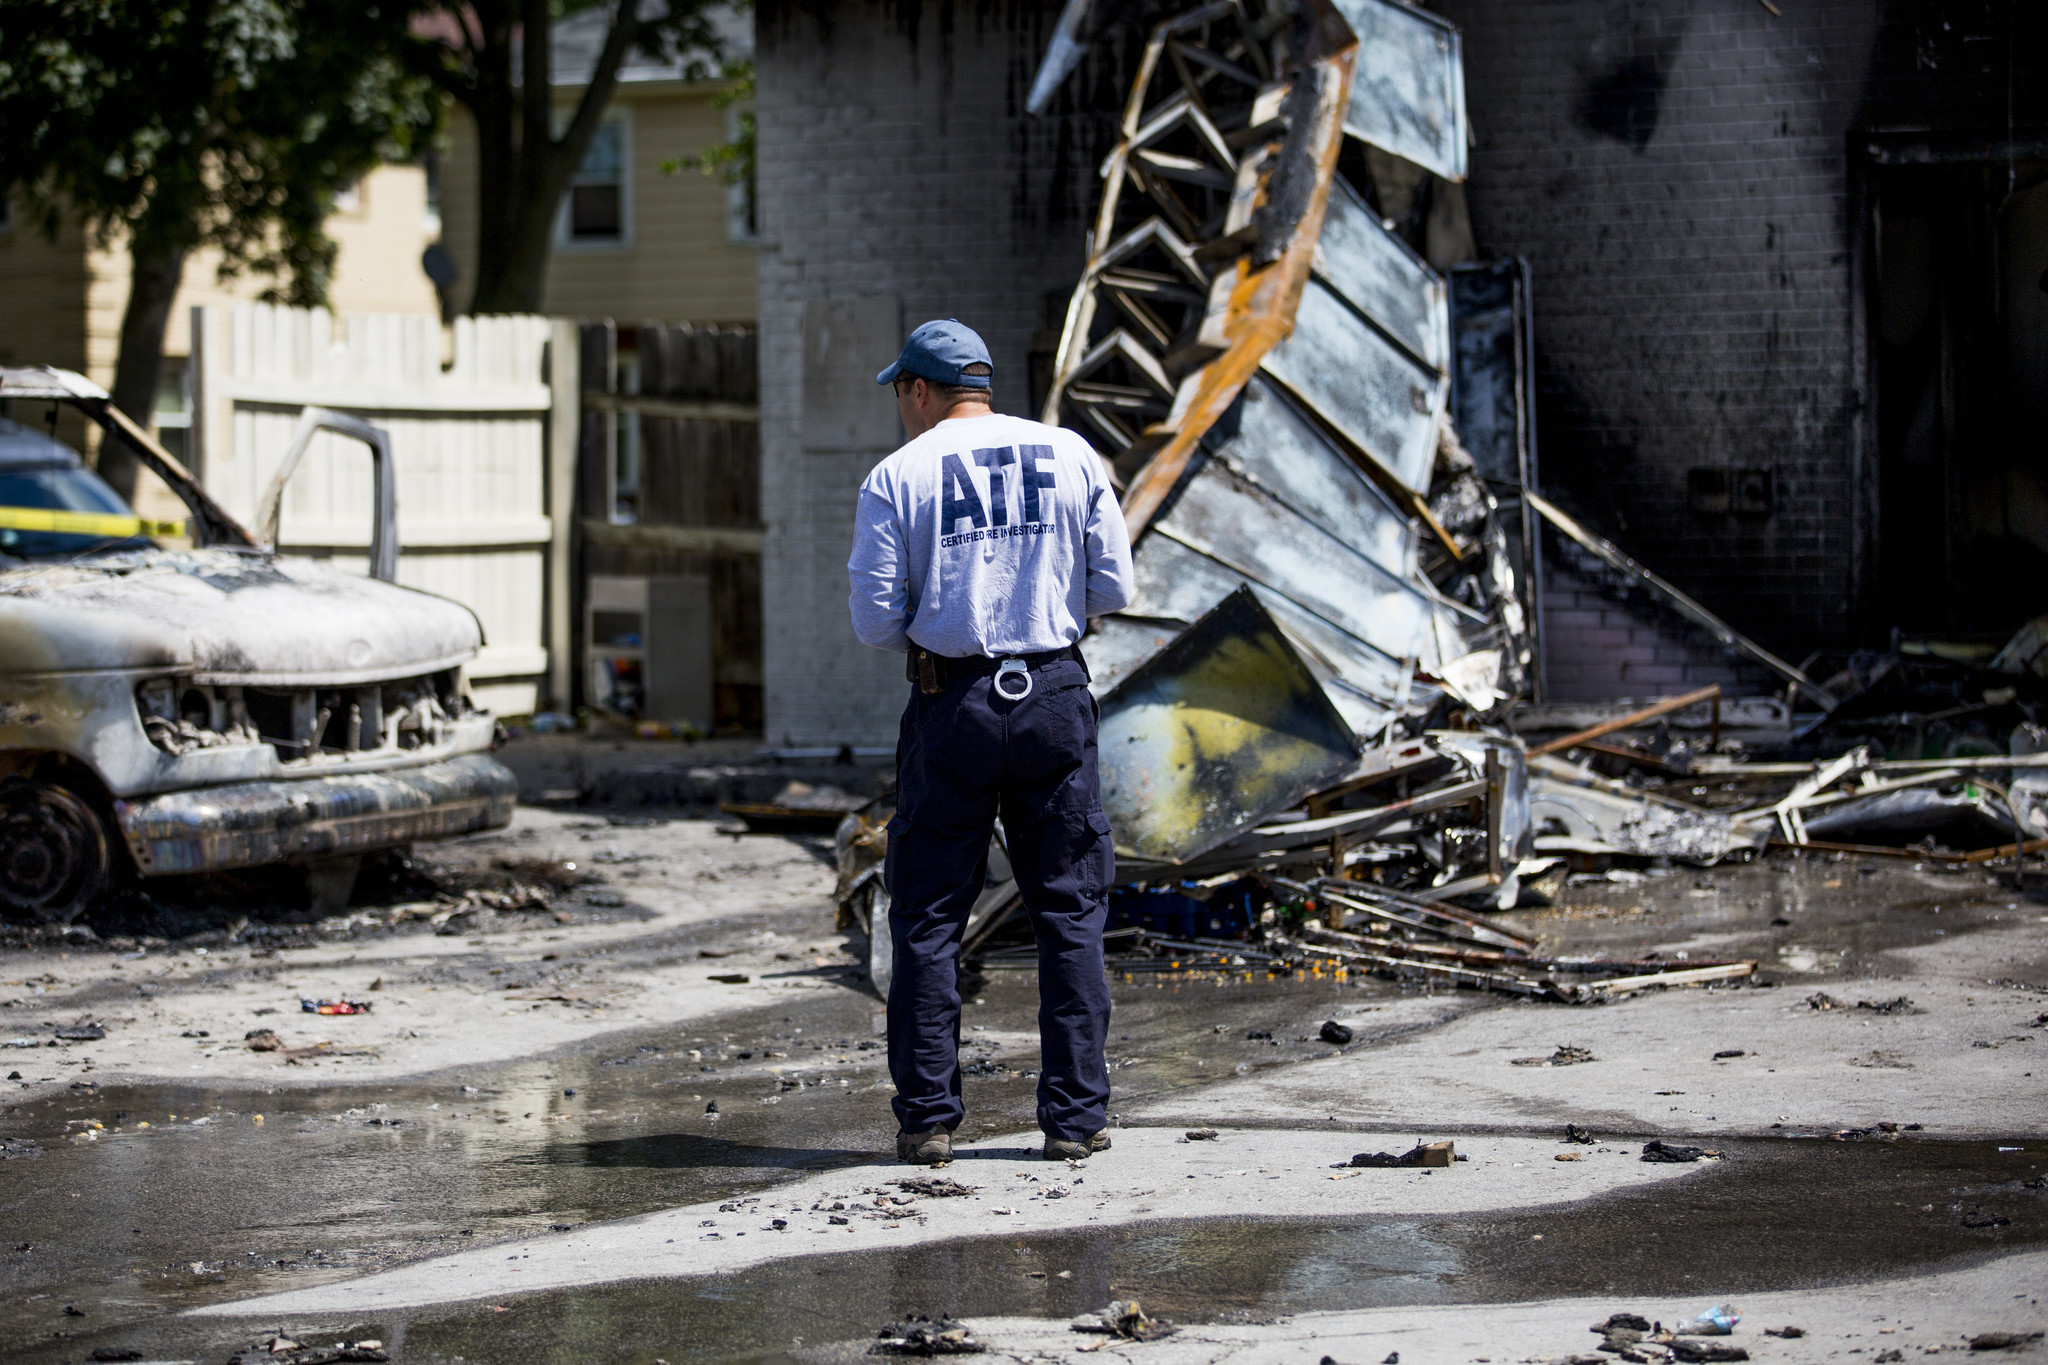 Road to urban despair paved by Democrats